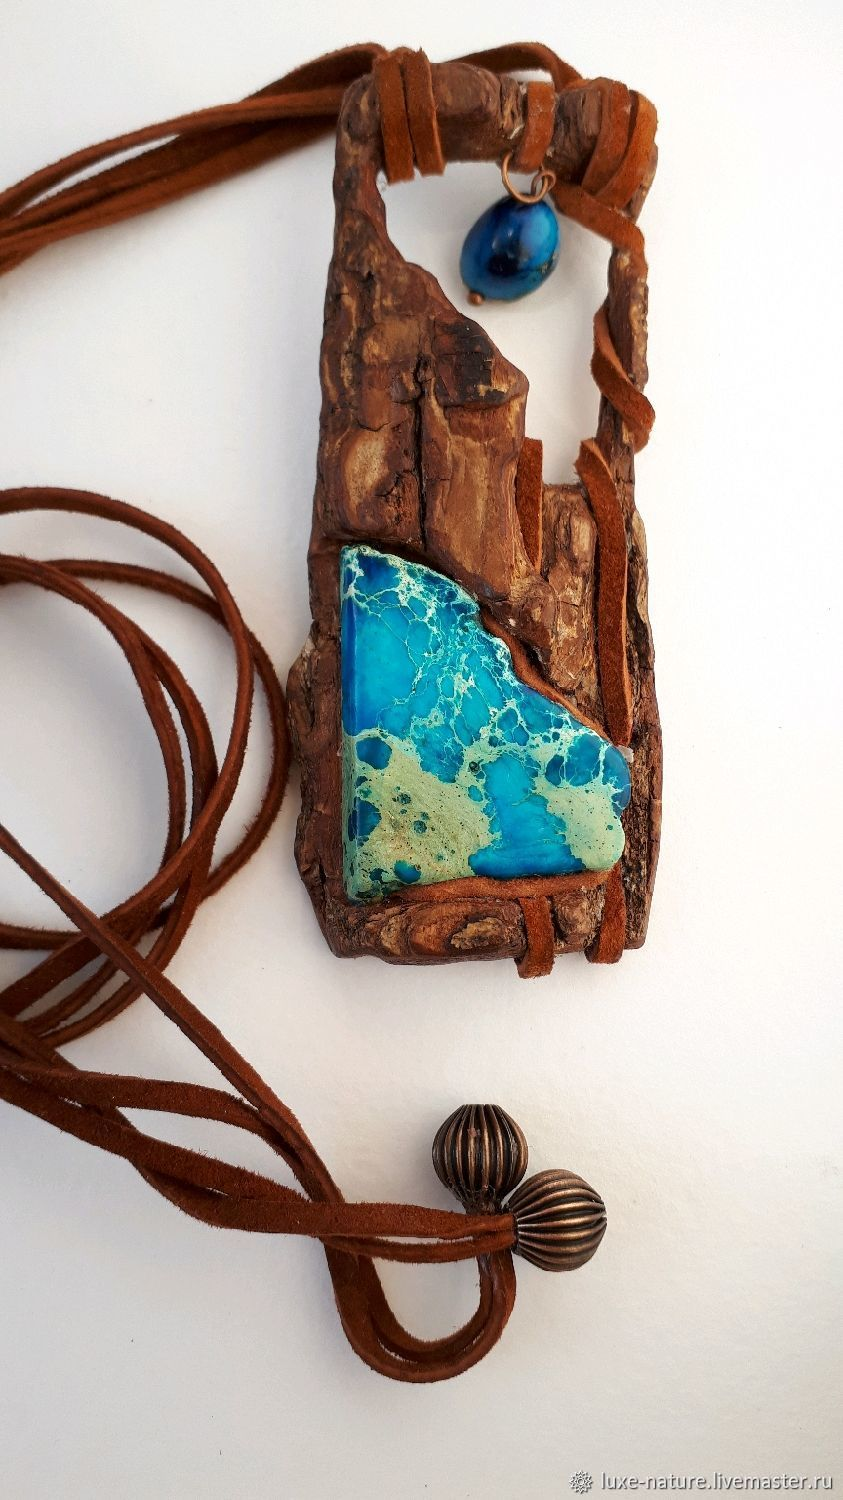 Pendant made from wood with a blue stone Flying over the land, Pendants, Moscow,  Фото №1